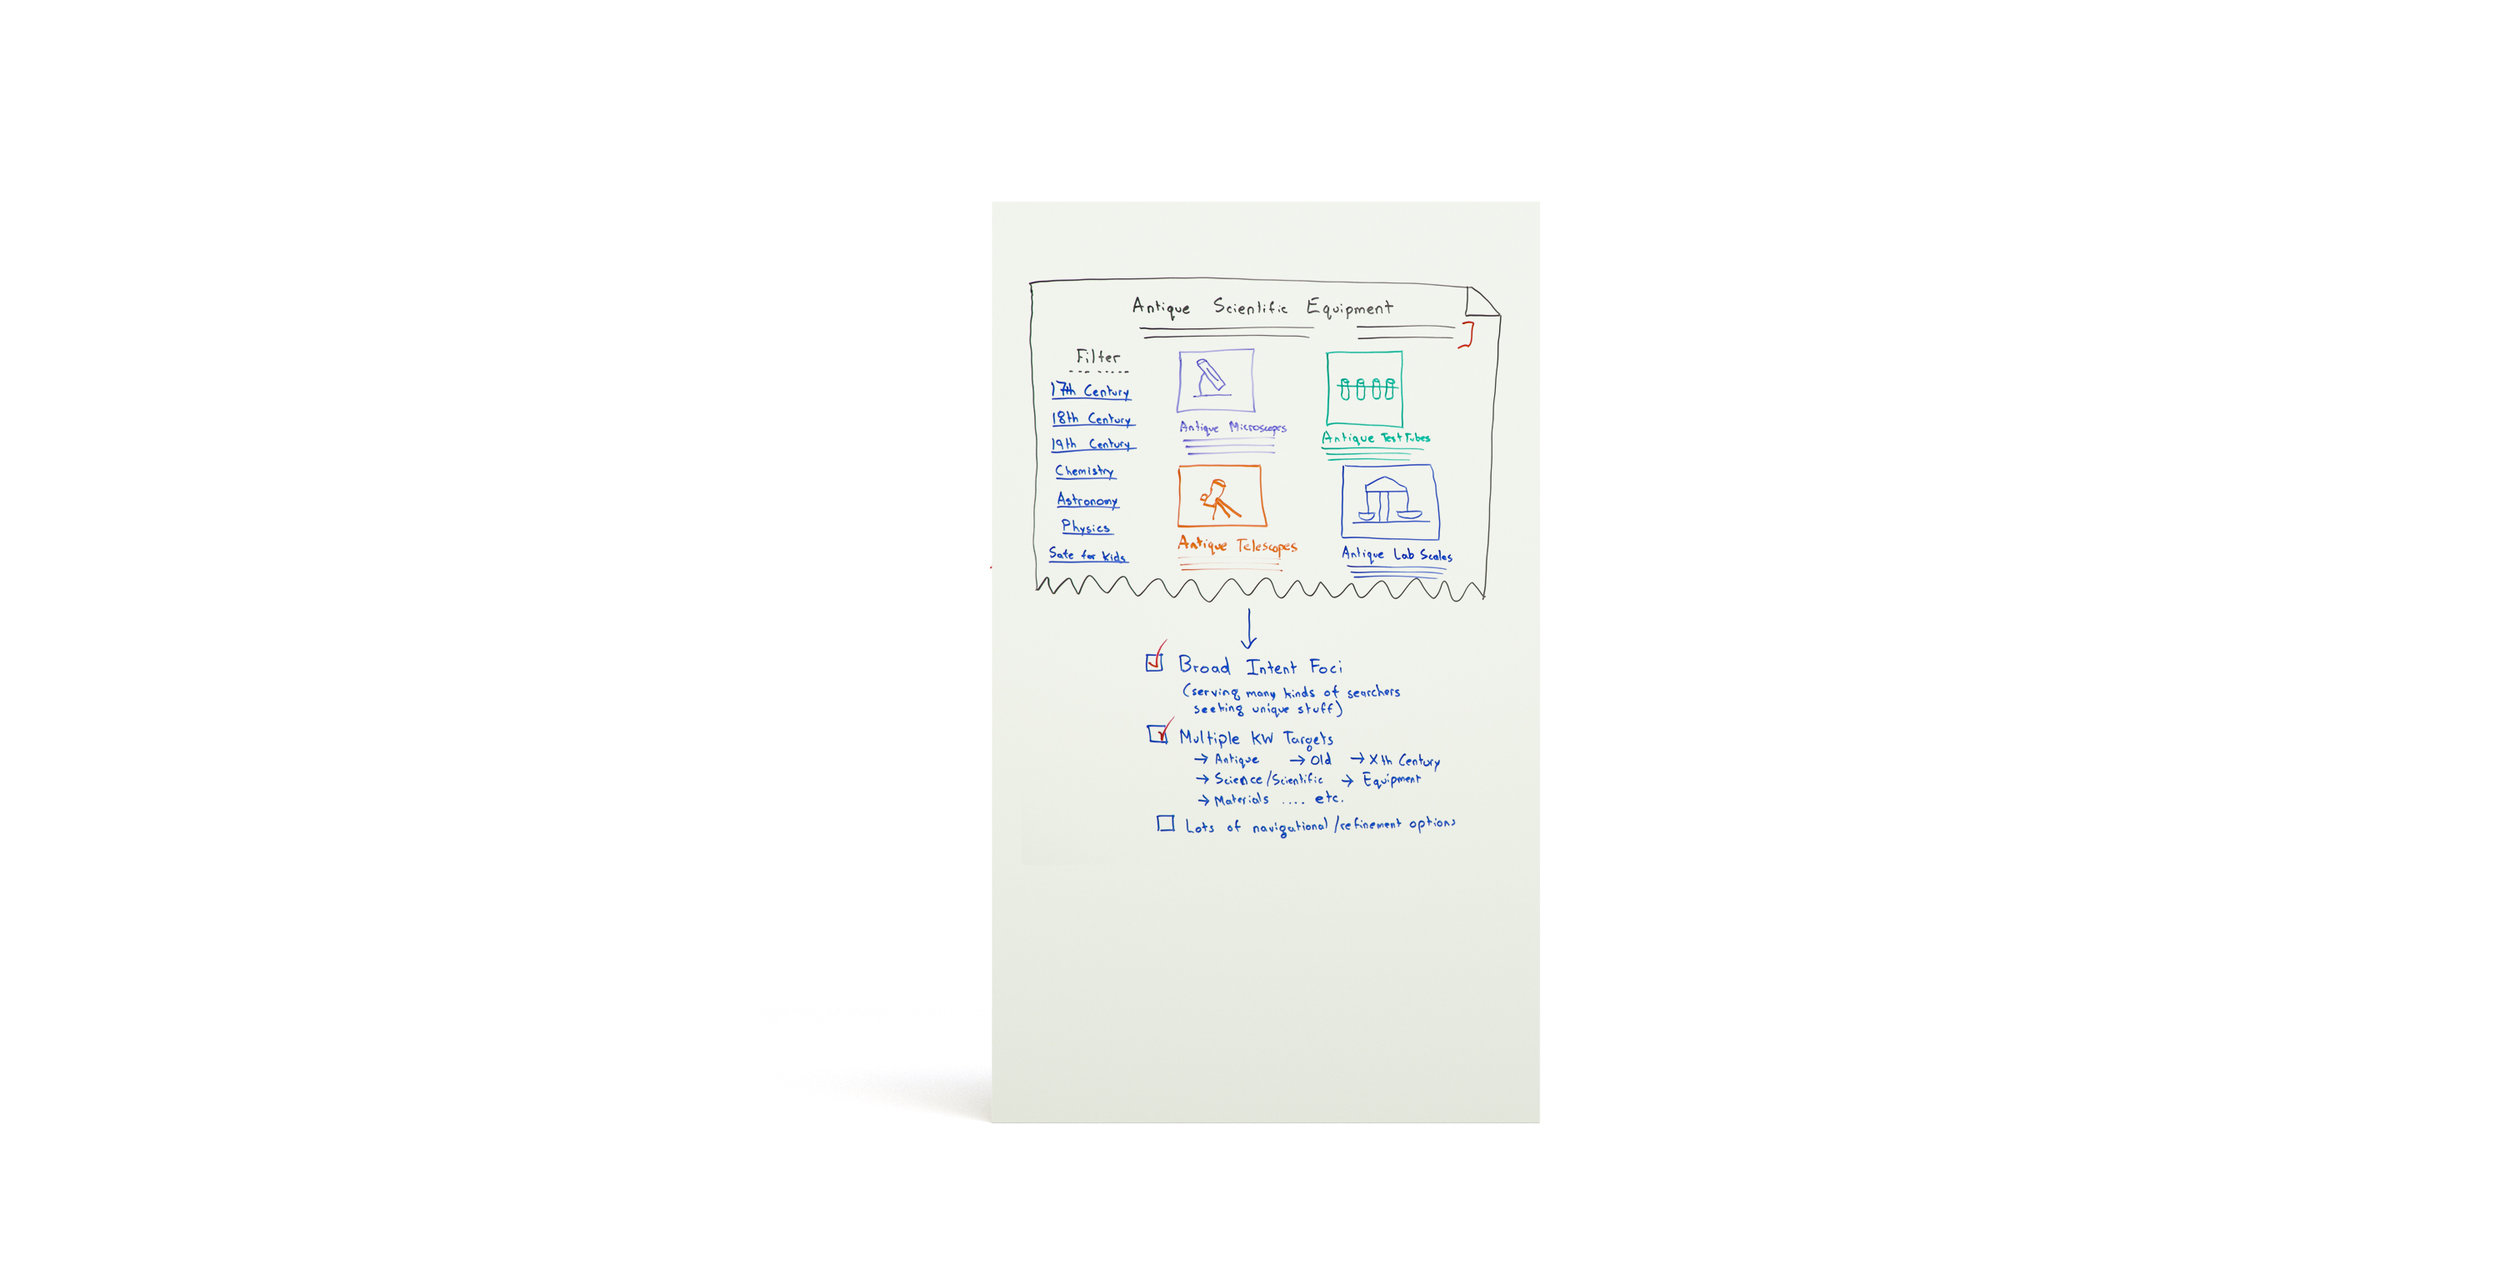 161115_ProductShots_Whiteboard 002.jpg